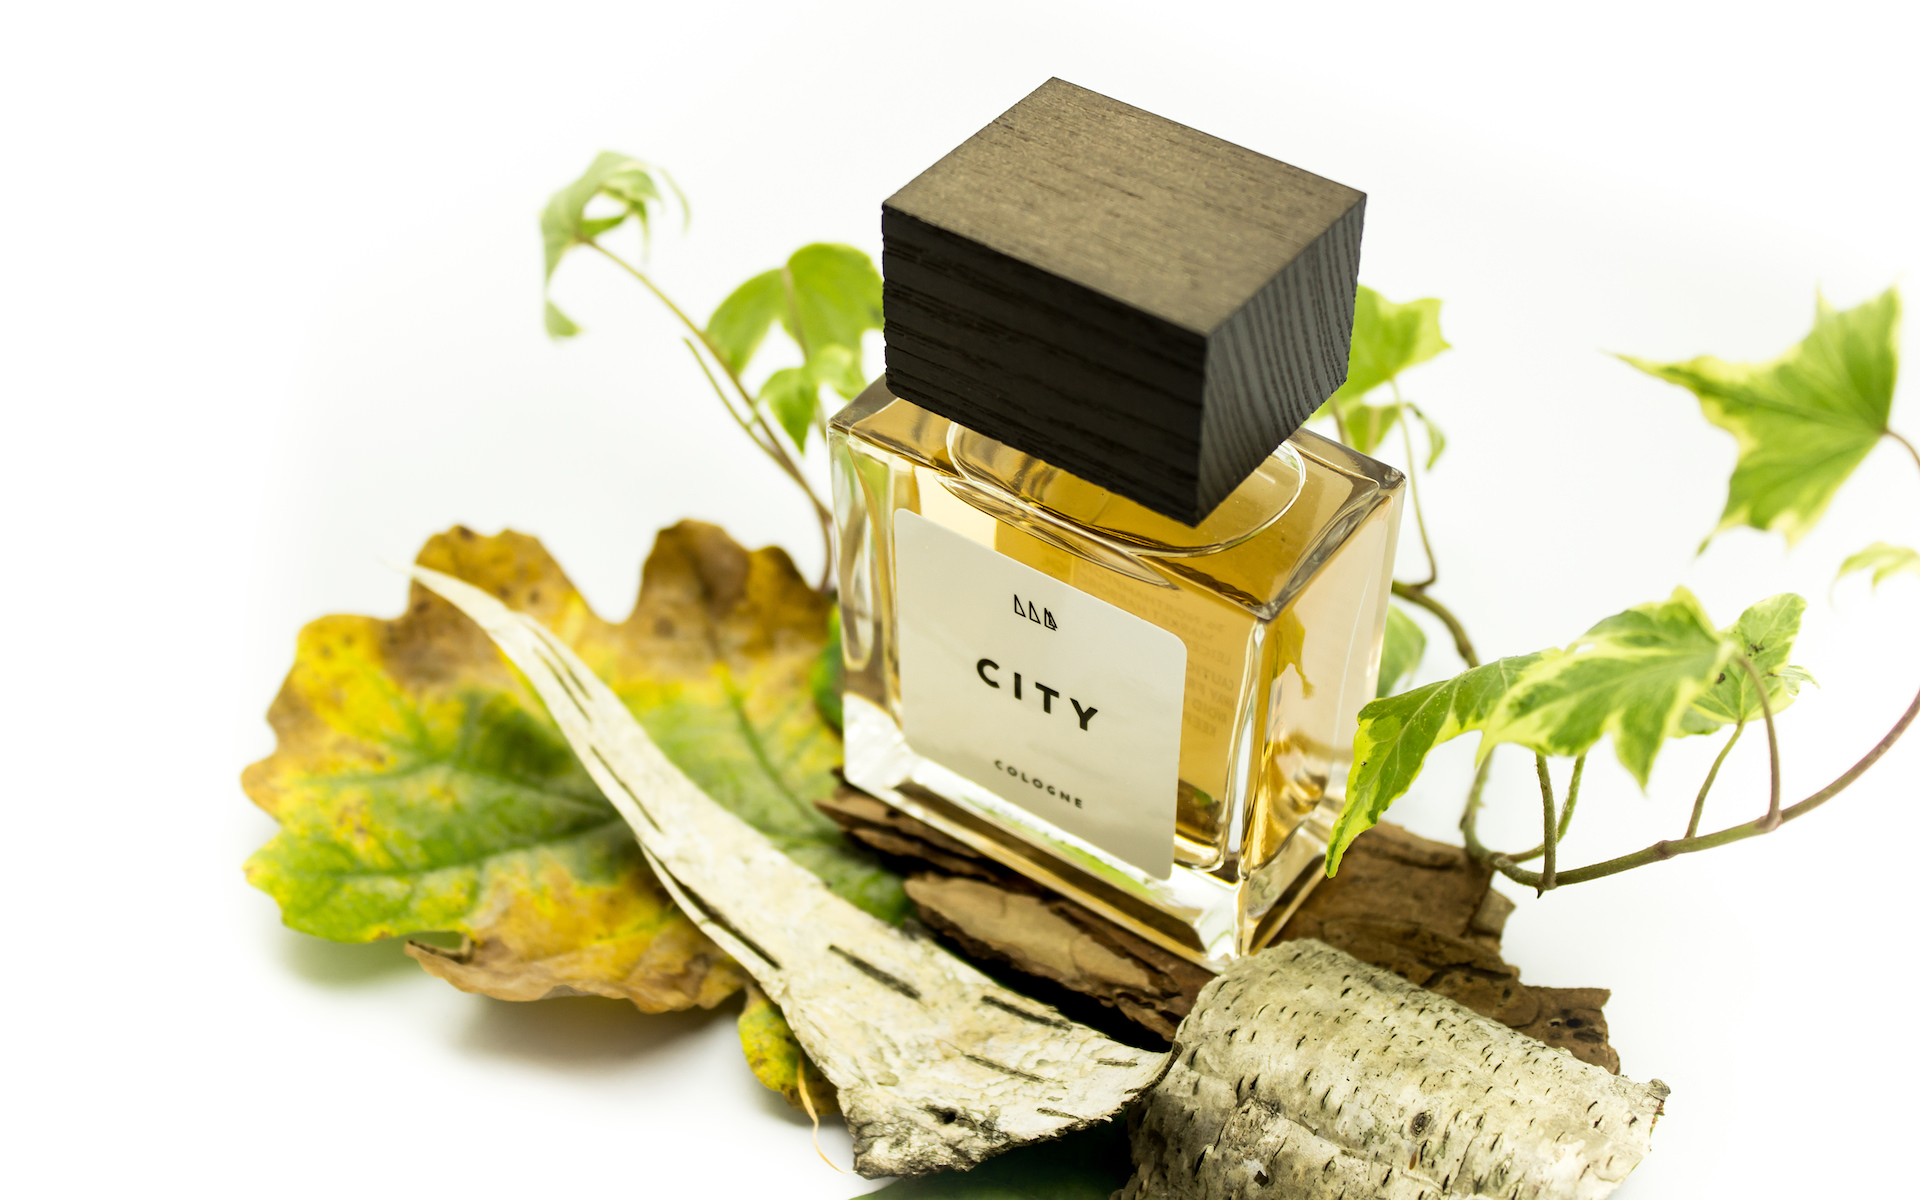 CITY is part of the UNITE Cologne Collection, designed to be blended and customised with COUNTRY and COAST, to create your own personalised fragrance every morning.